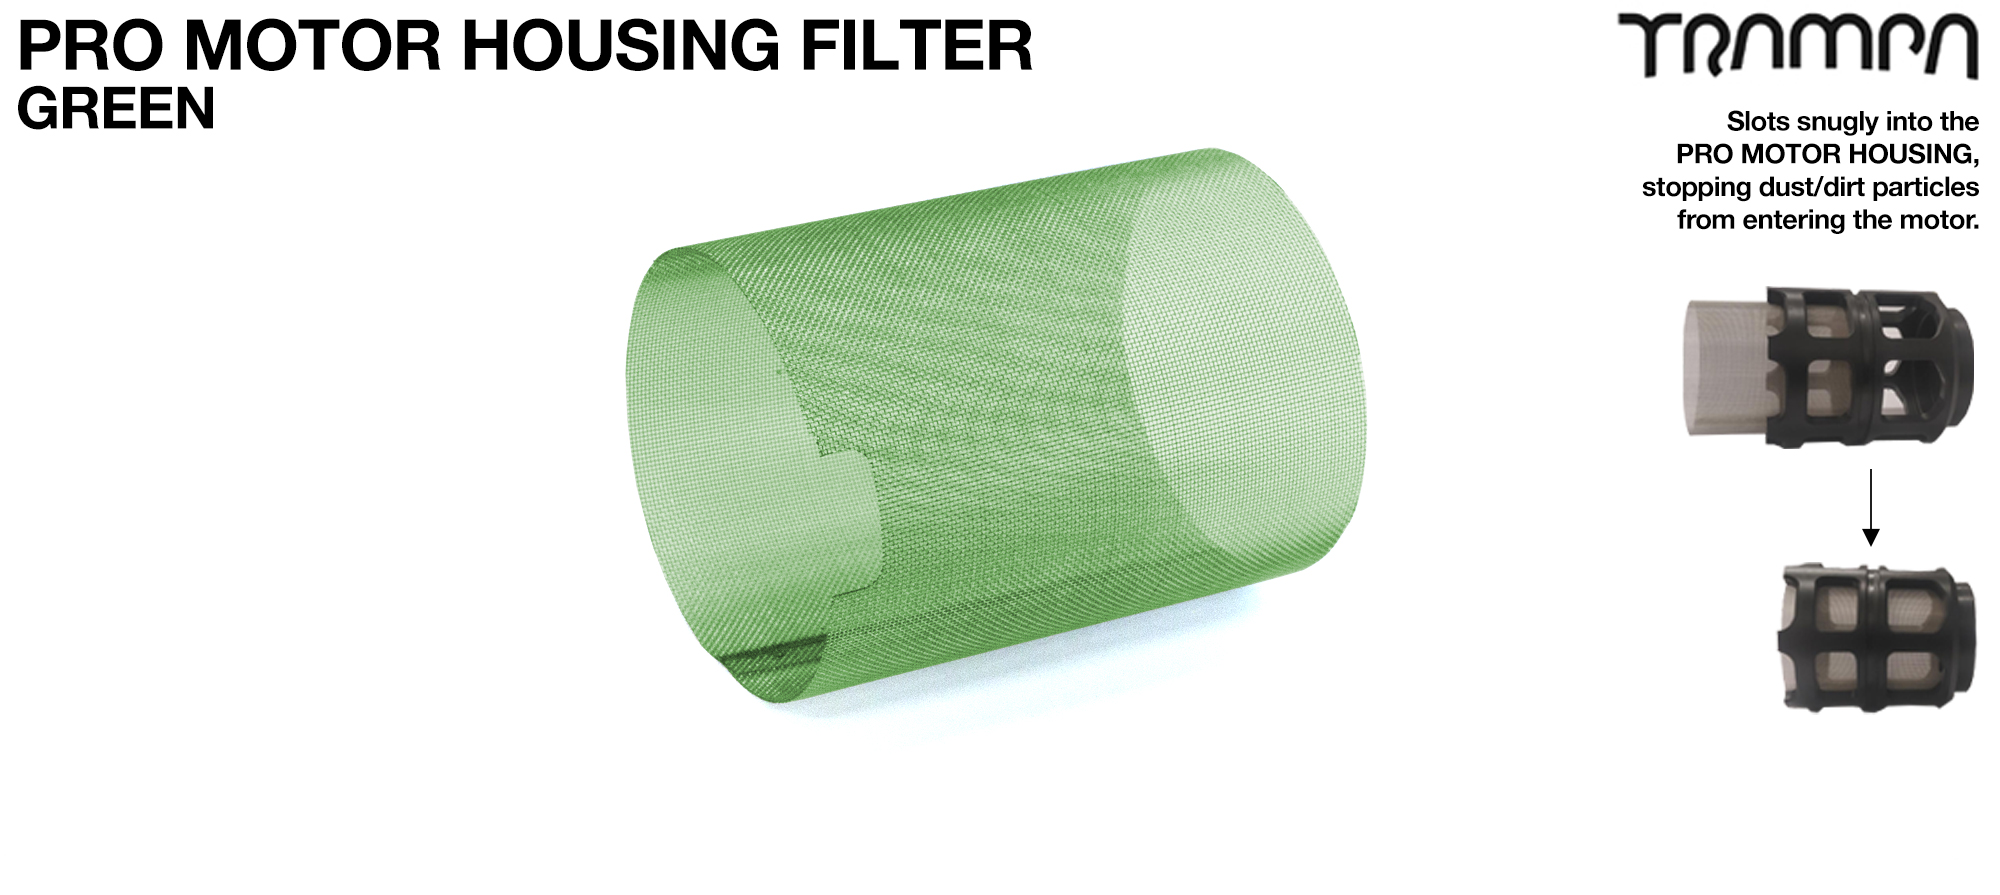 Motor Protection Cover MESH FILTER - GREEN